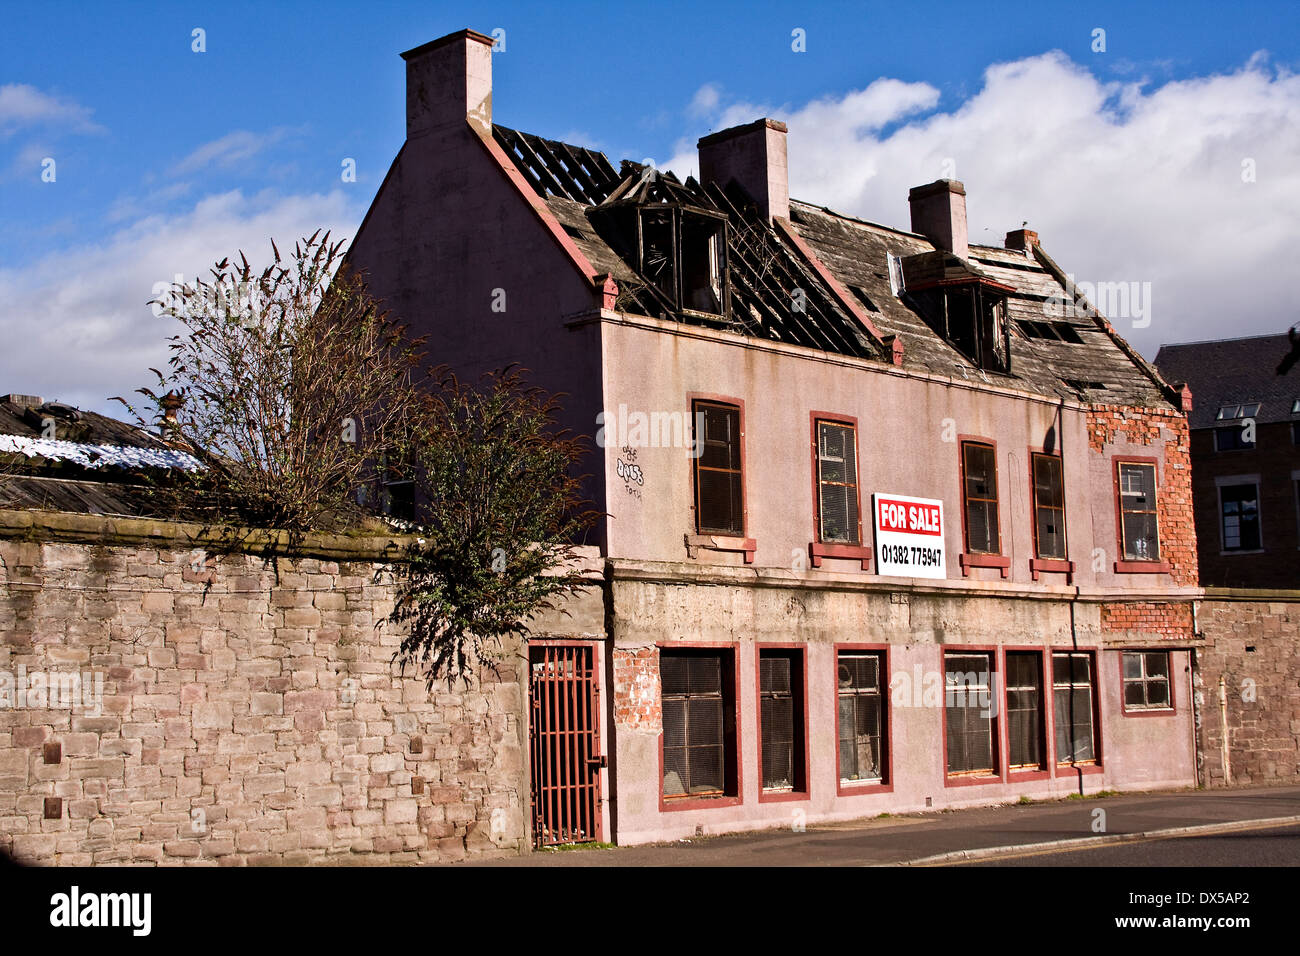 Derelict building along Brook Street once was a Flax/Jute Mill and part of Queen Victoria Works built around 1834 in Dundee, UK - Stock Image